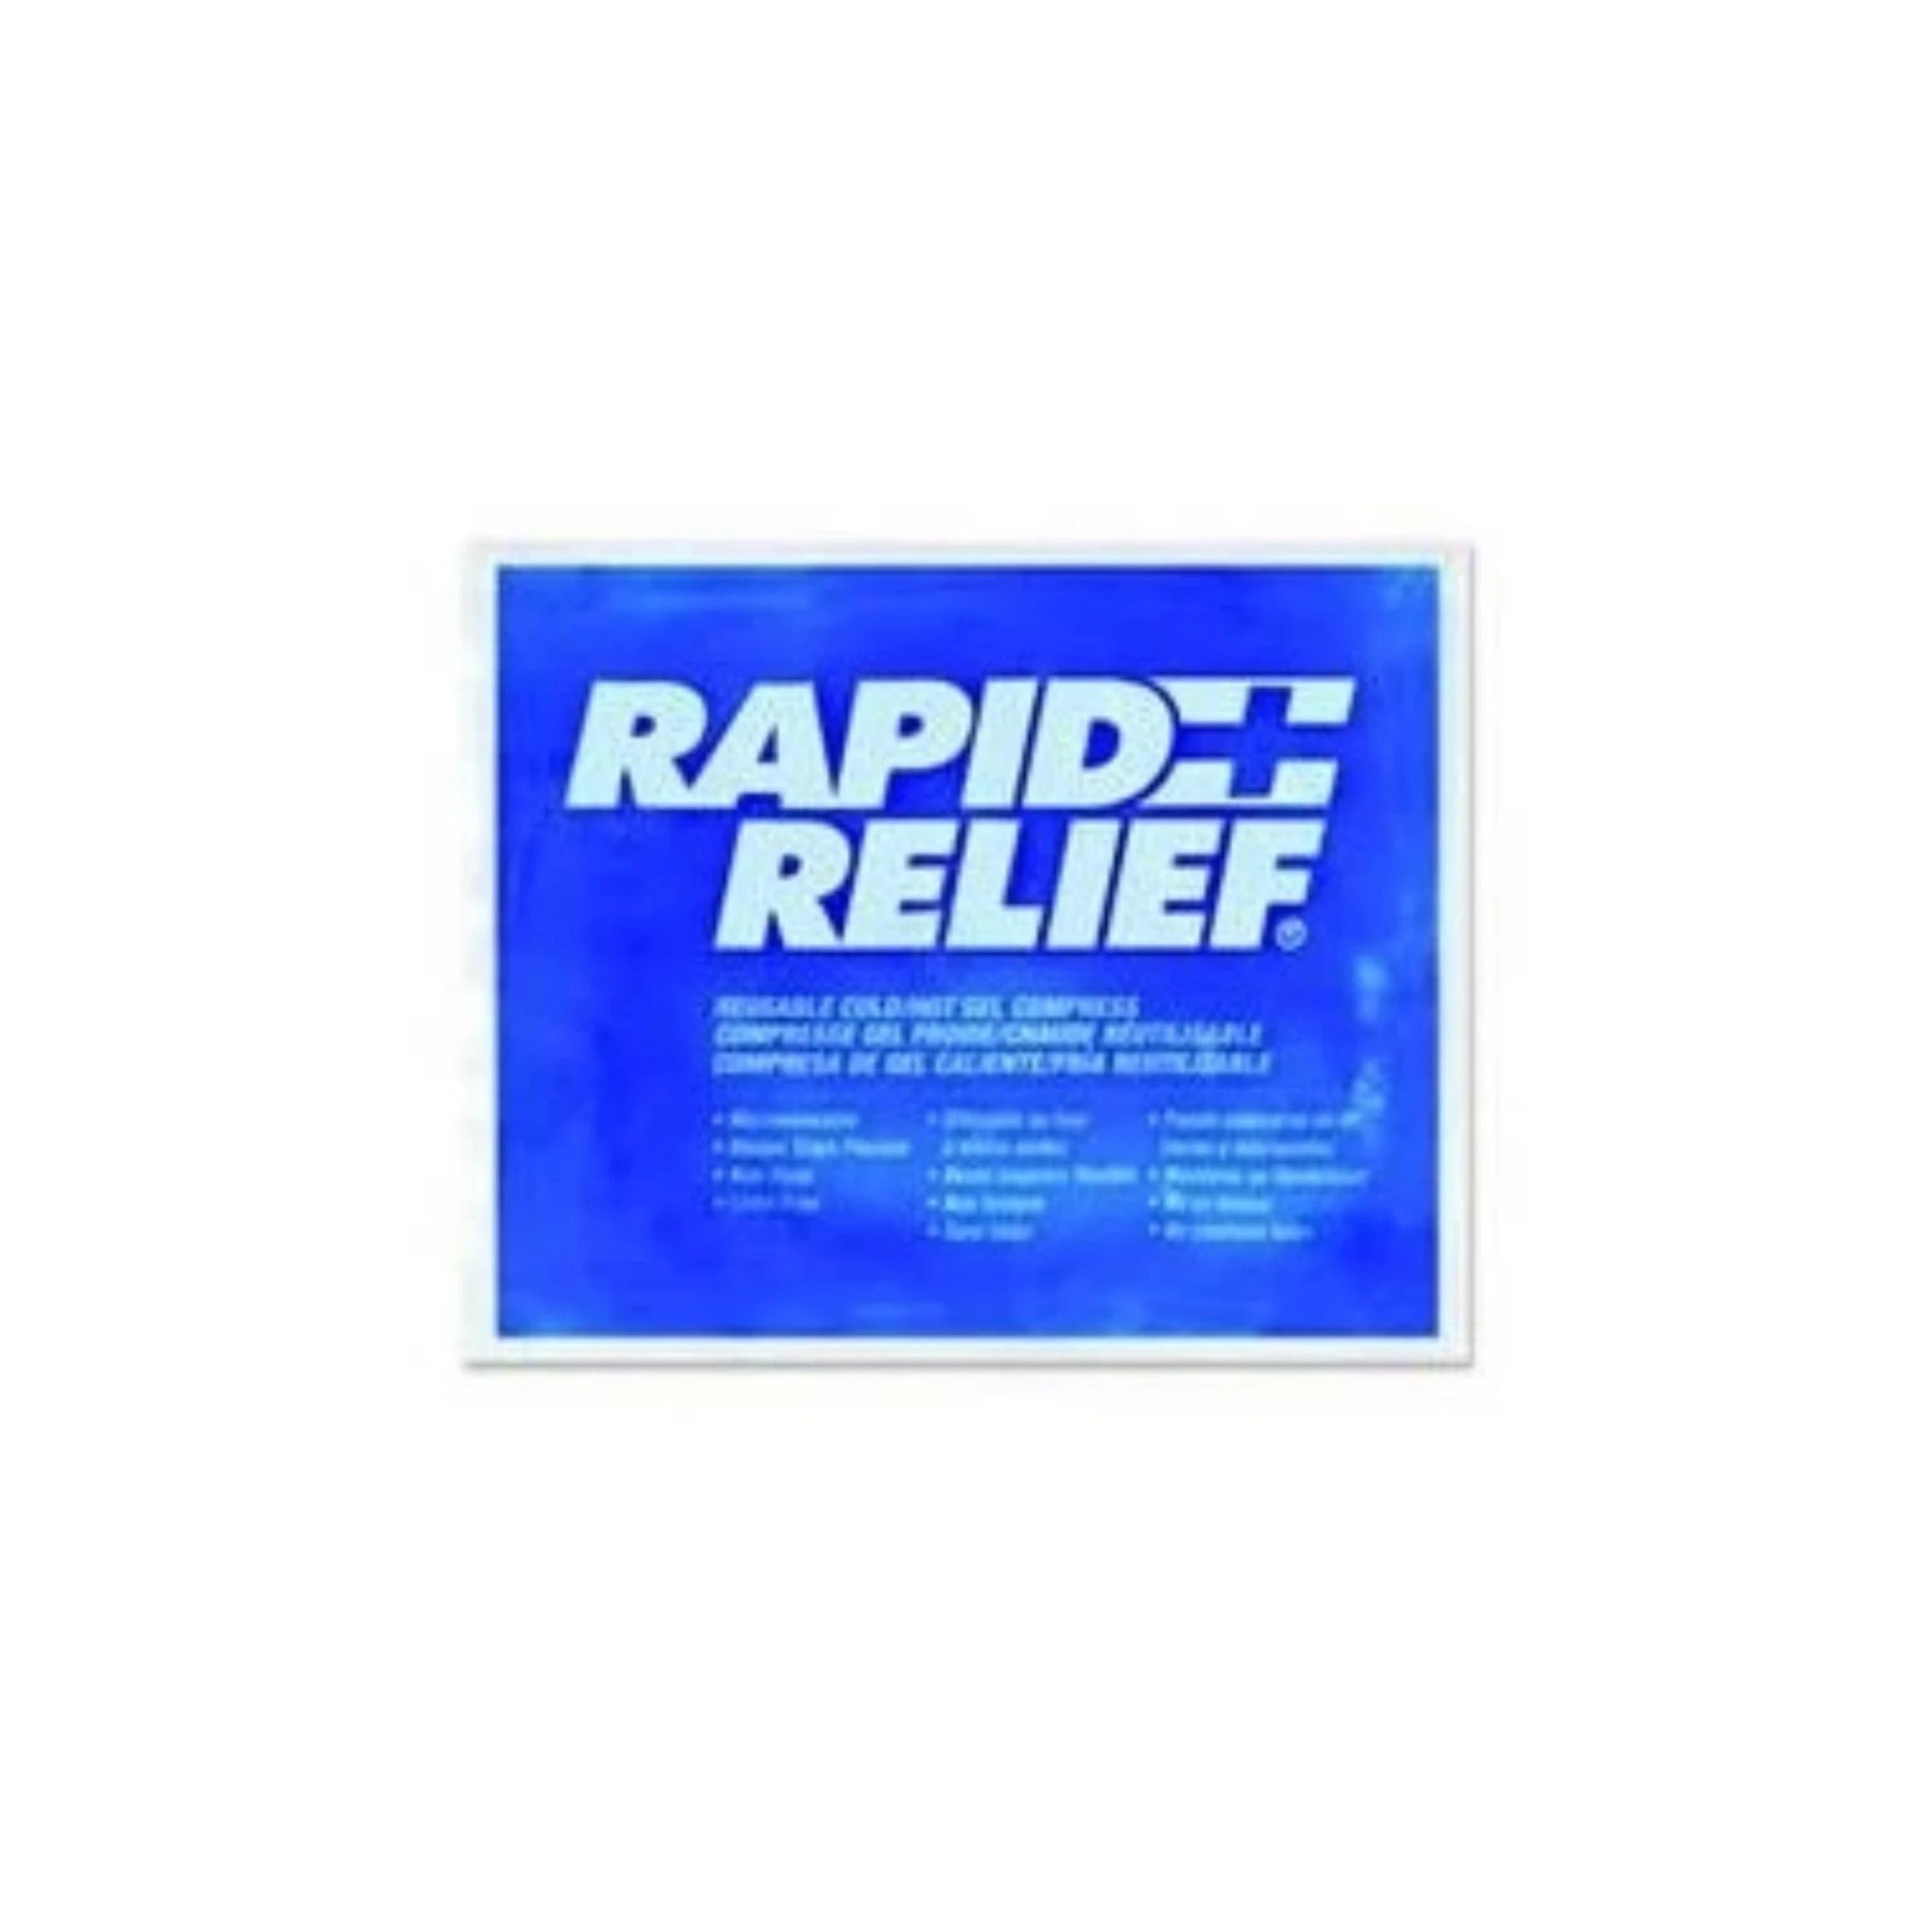 RAPID RELIEF Flexible Reusable Hot Cold Compress